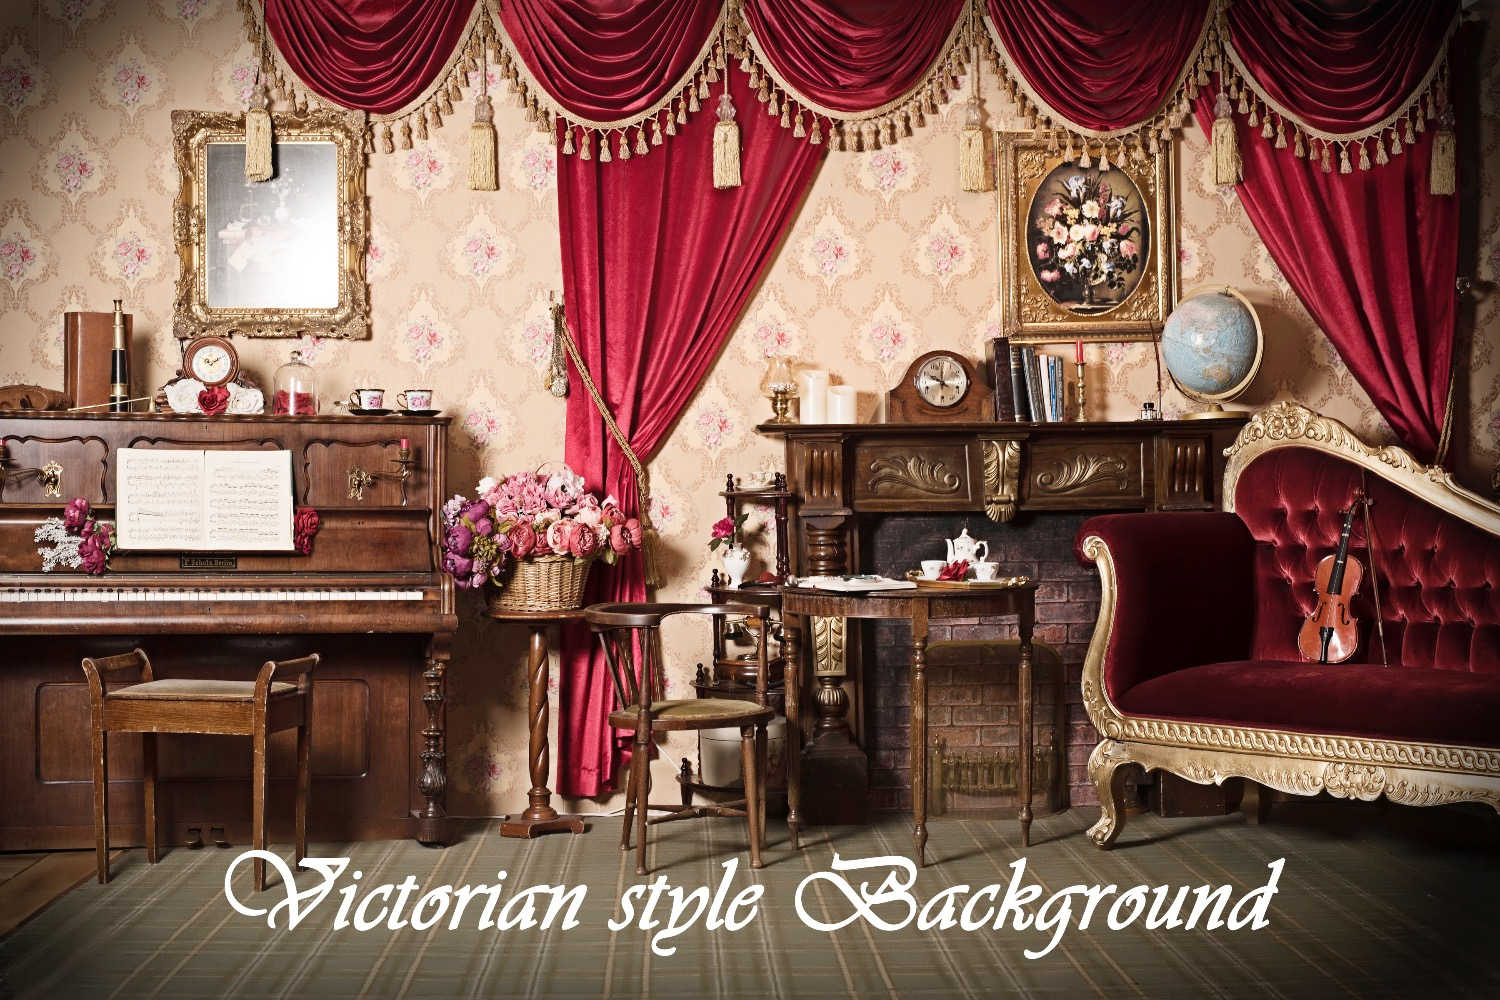 Victorian style Background